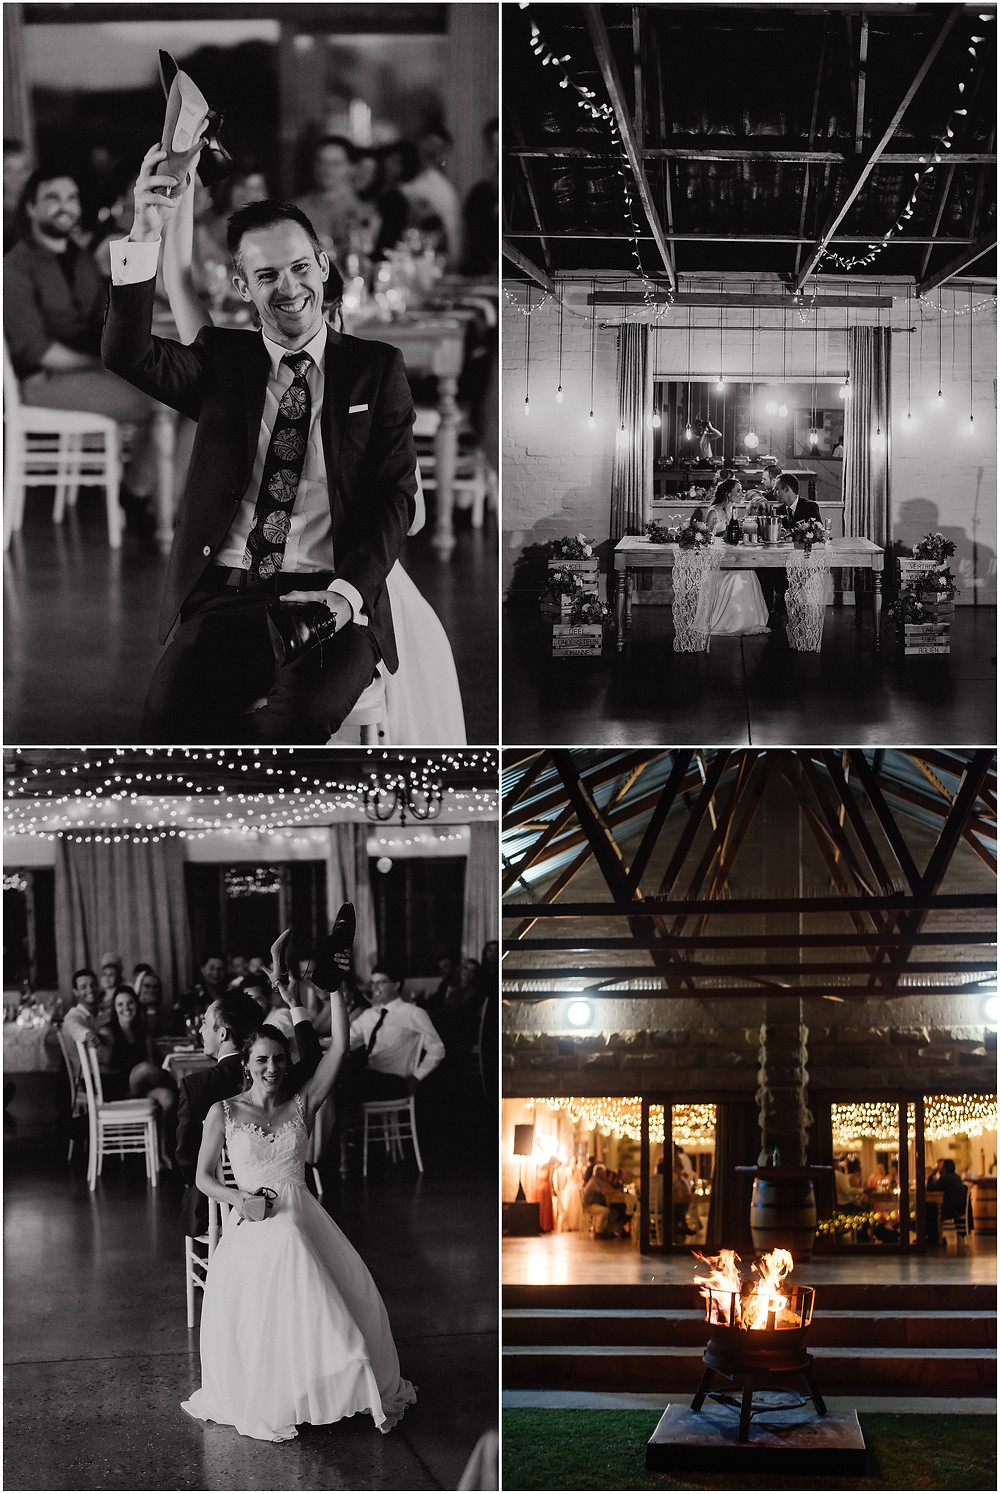 Clarens & Bloemfontein Wedding photographers